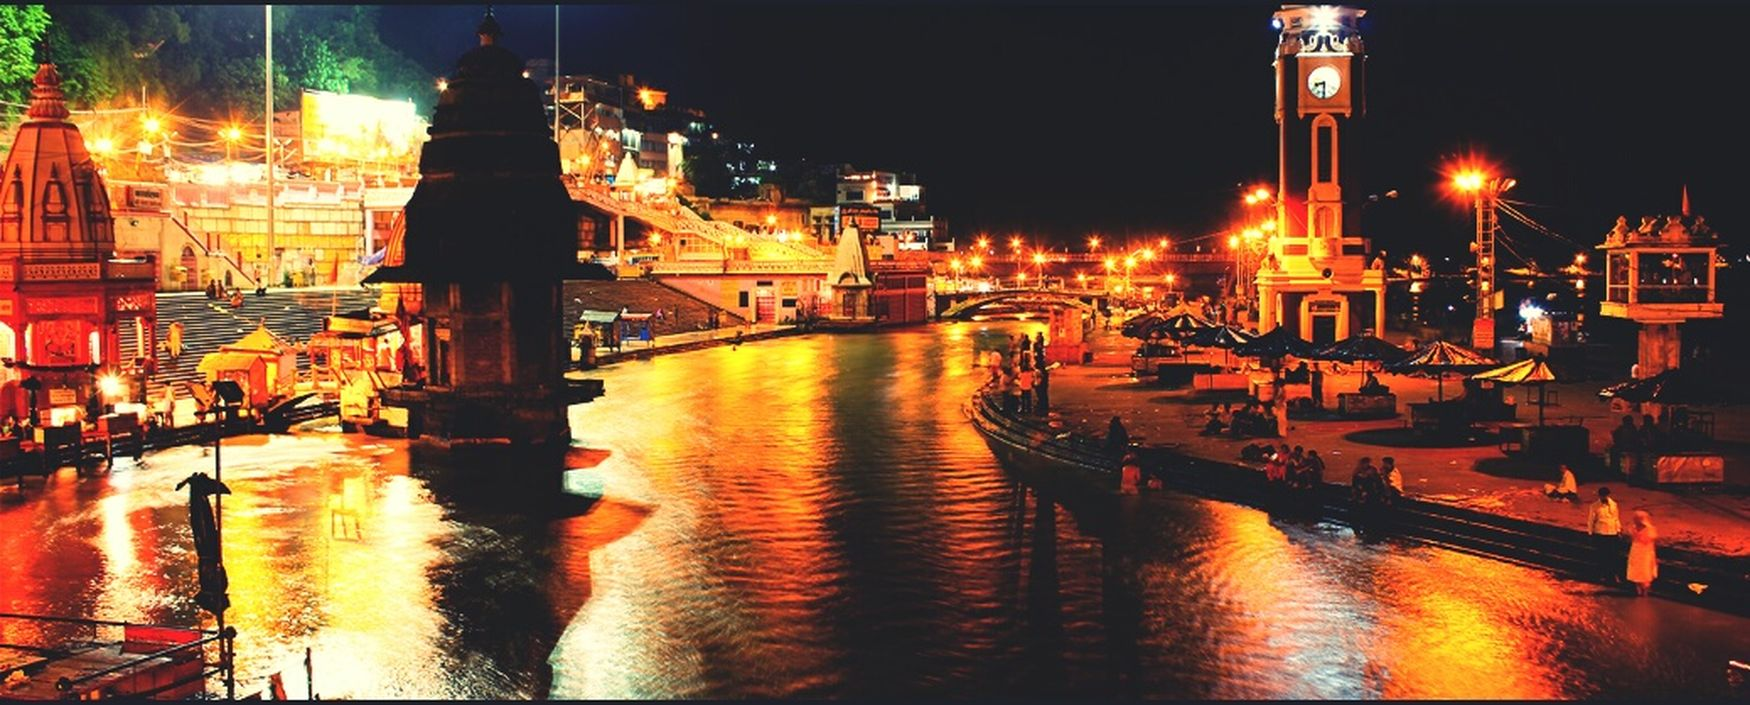 Ganga River Haridwar,India Night City Travel Destinations Beautiful Godhouse Purest River